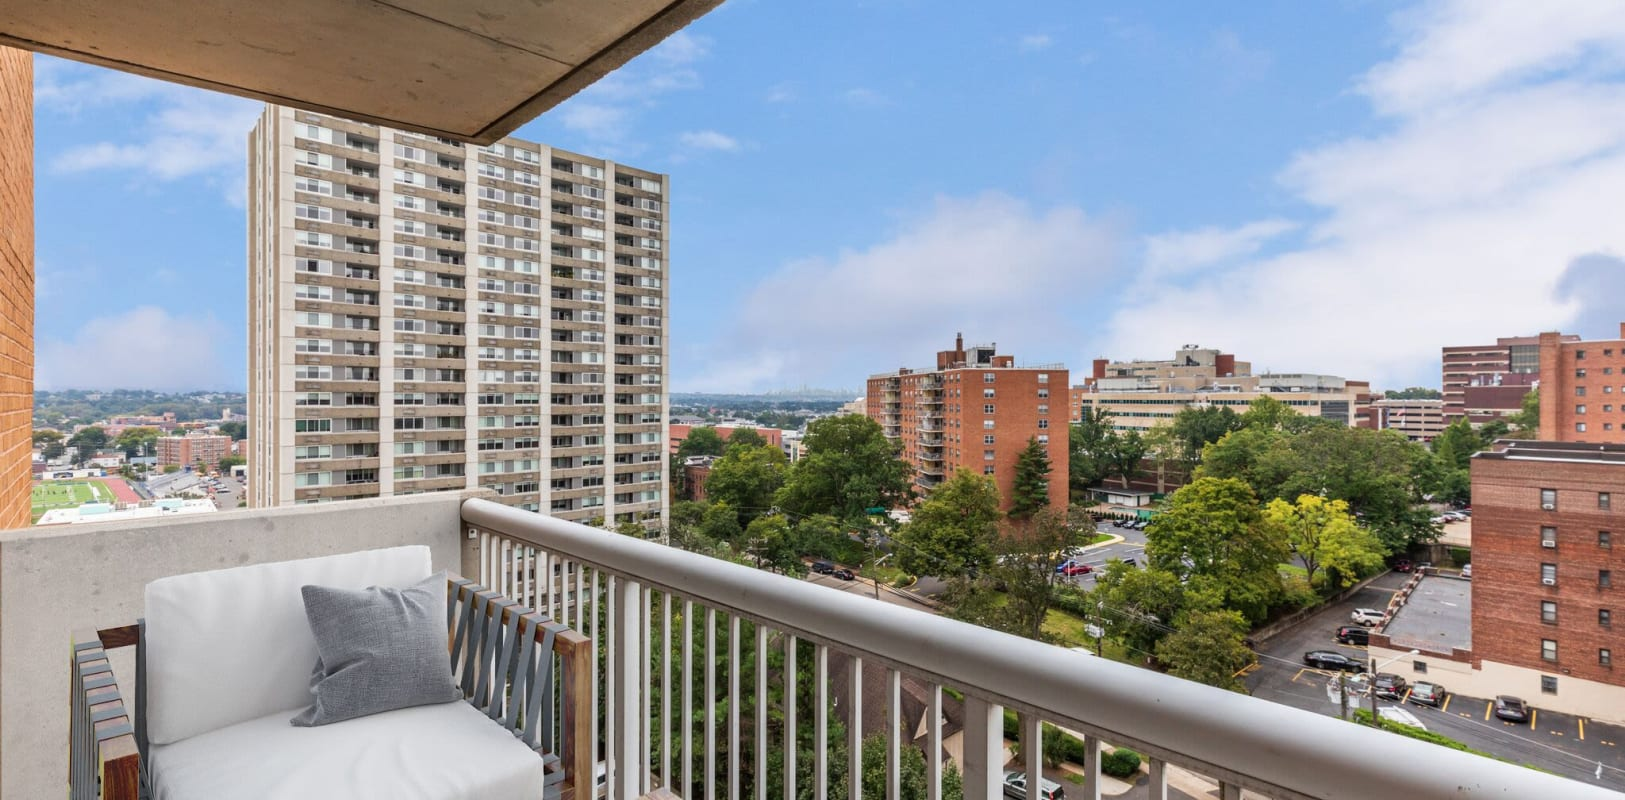 Private balcony at 140 Prospect in Hackensack, New Jersey